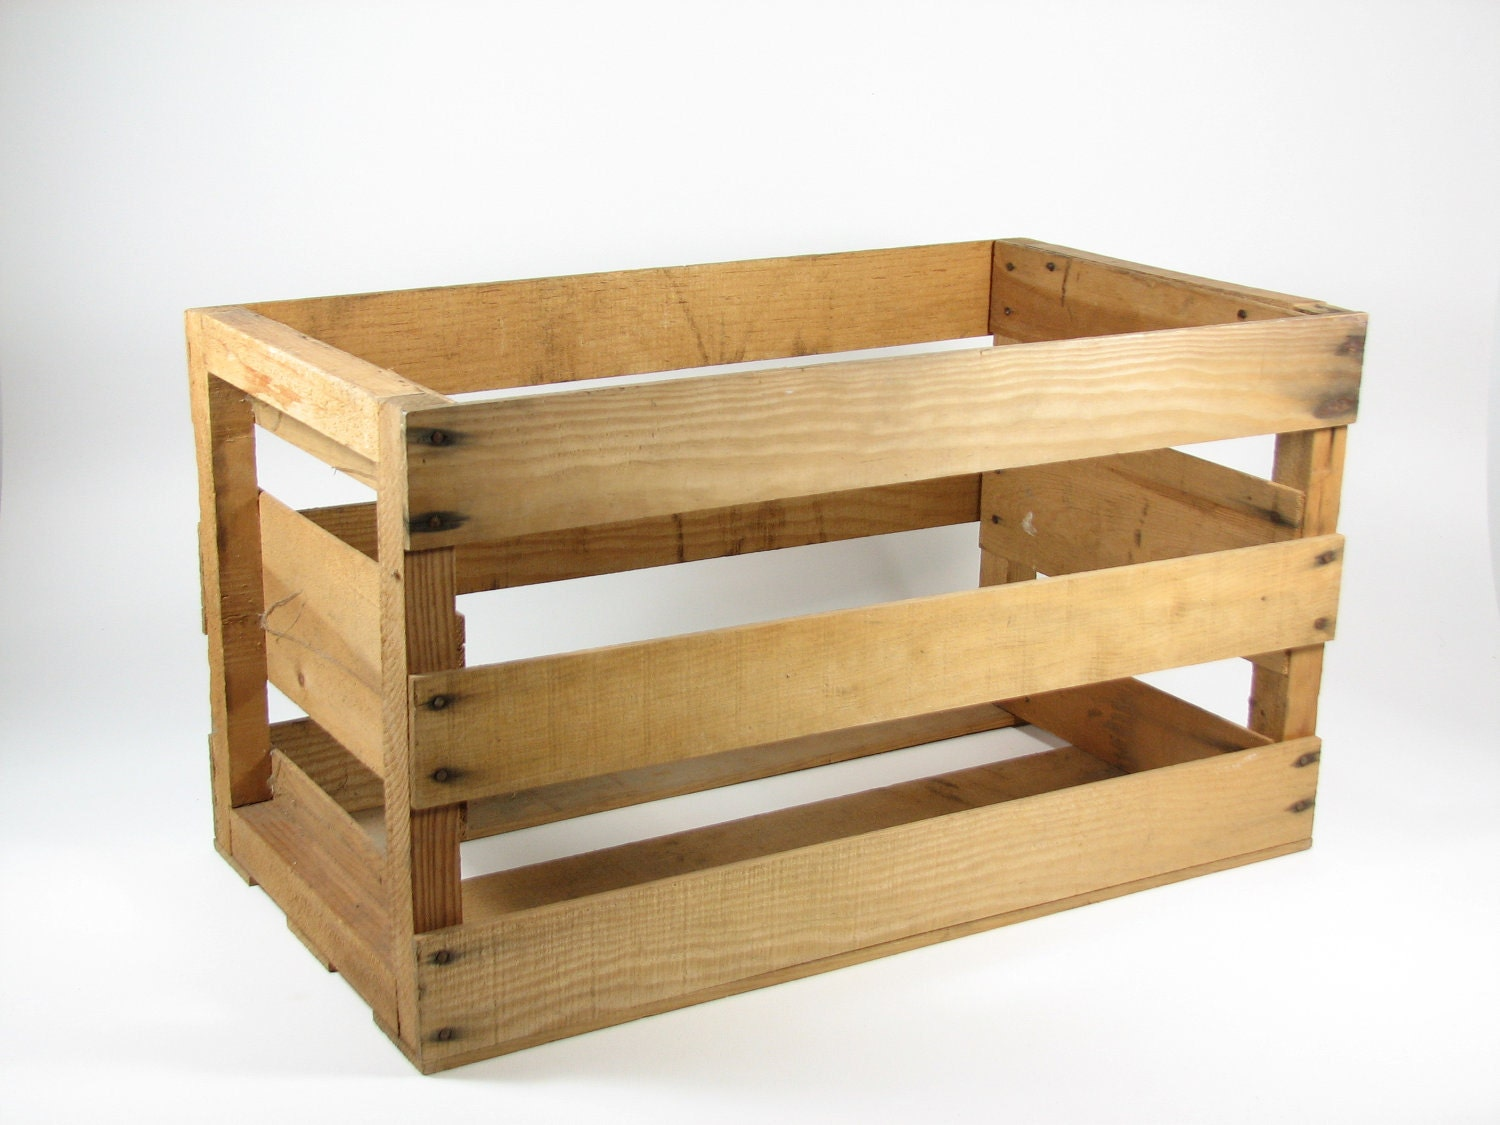 Vintage wood crate wooden box fruit tote for Timber crates